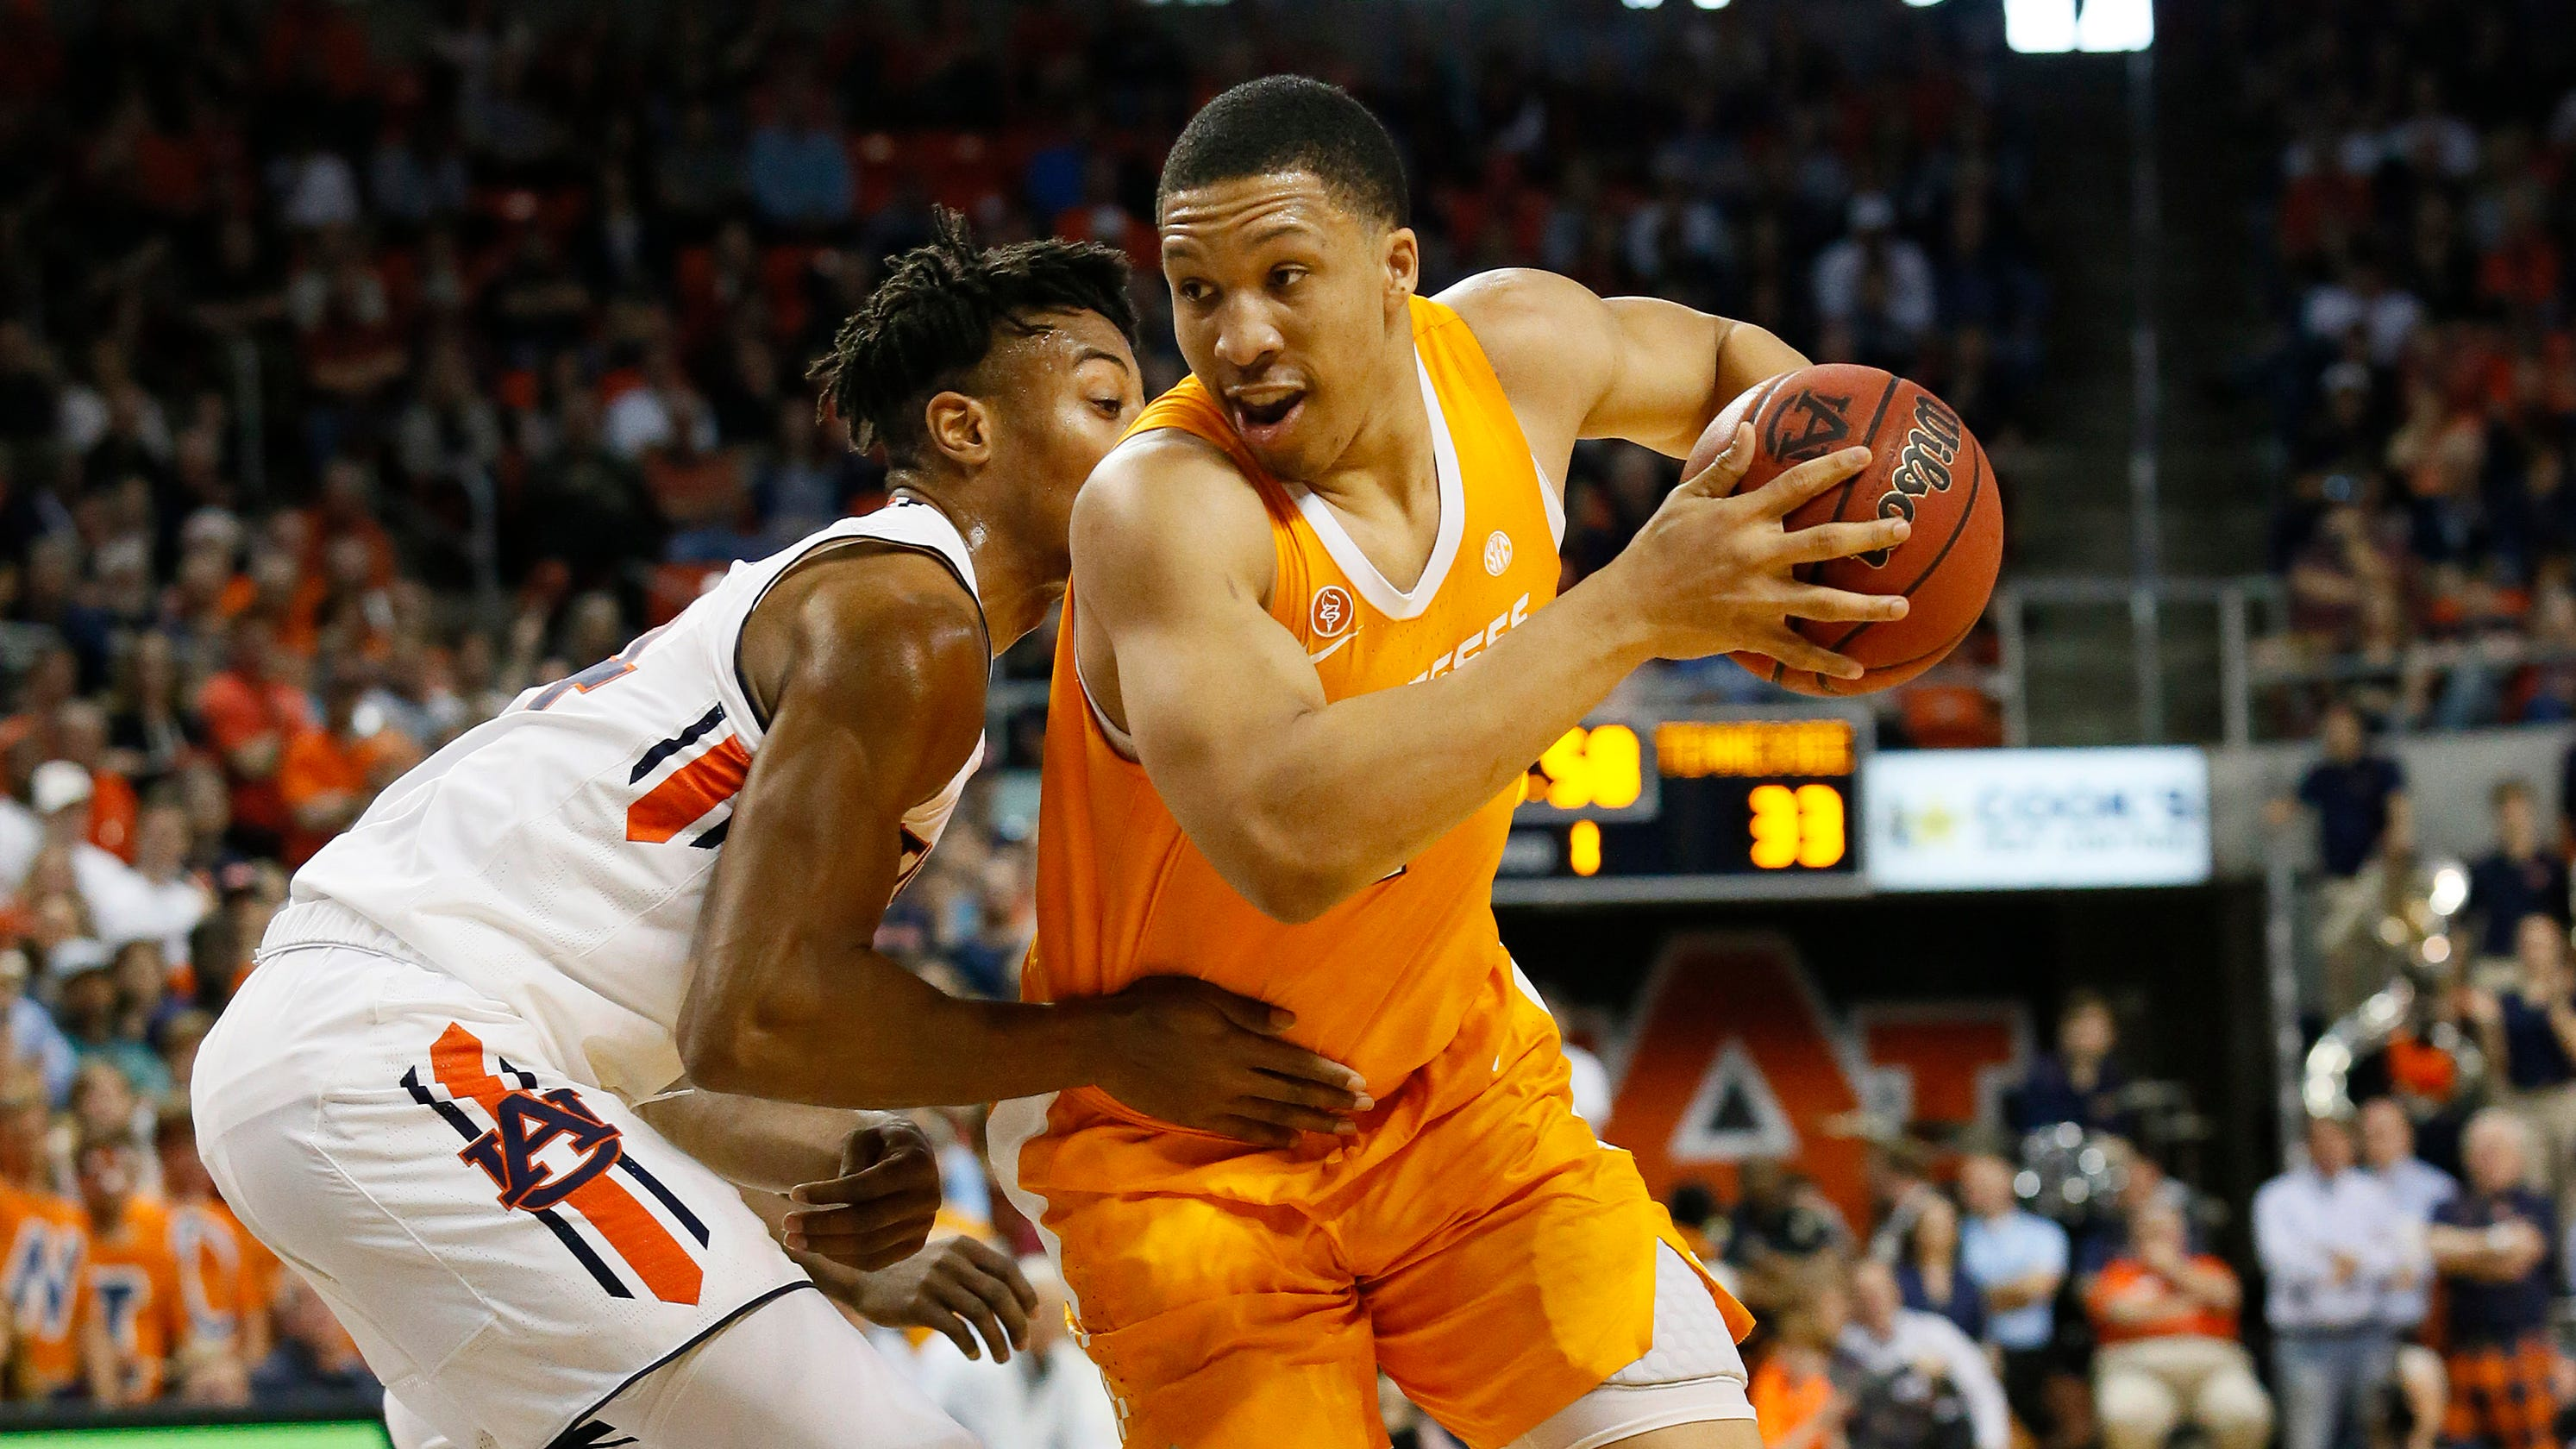 Tennessee Basketball Vols Fall To Auburn Squander Share Of